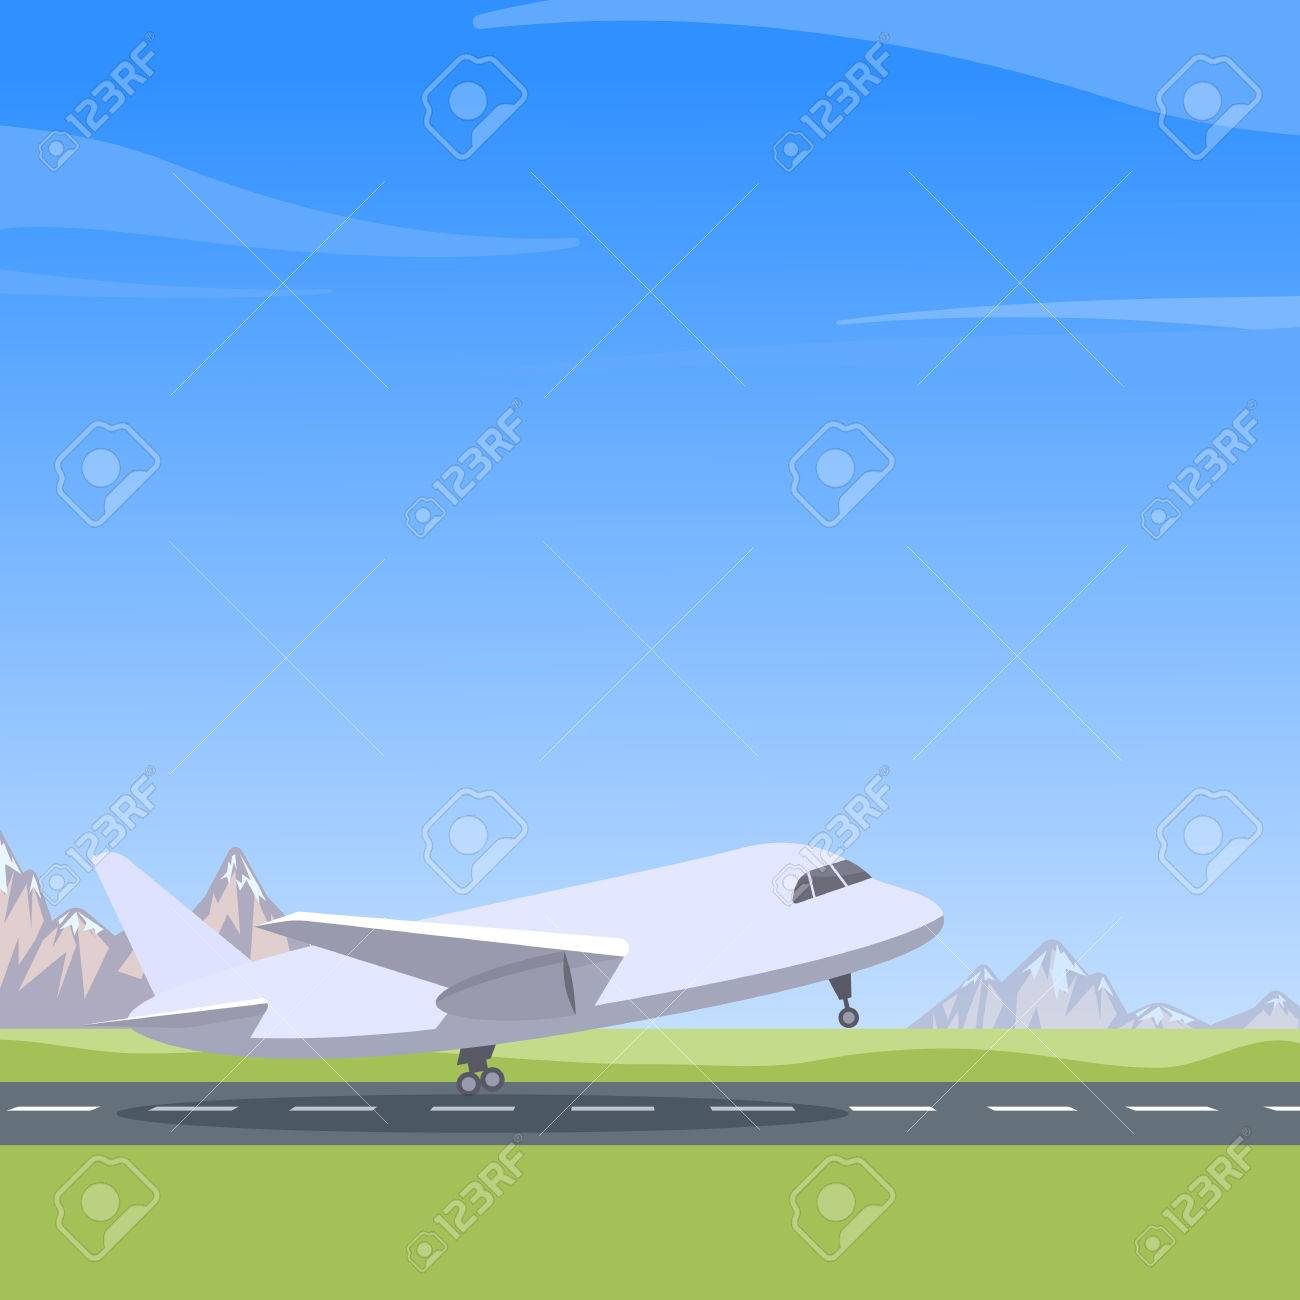 Plane takes off, mountain landscape, blue sky. Aircraft preparing for take-off - 58321467